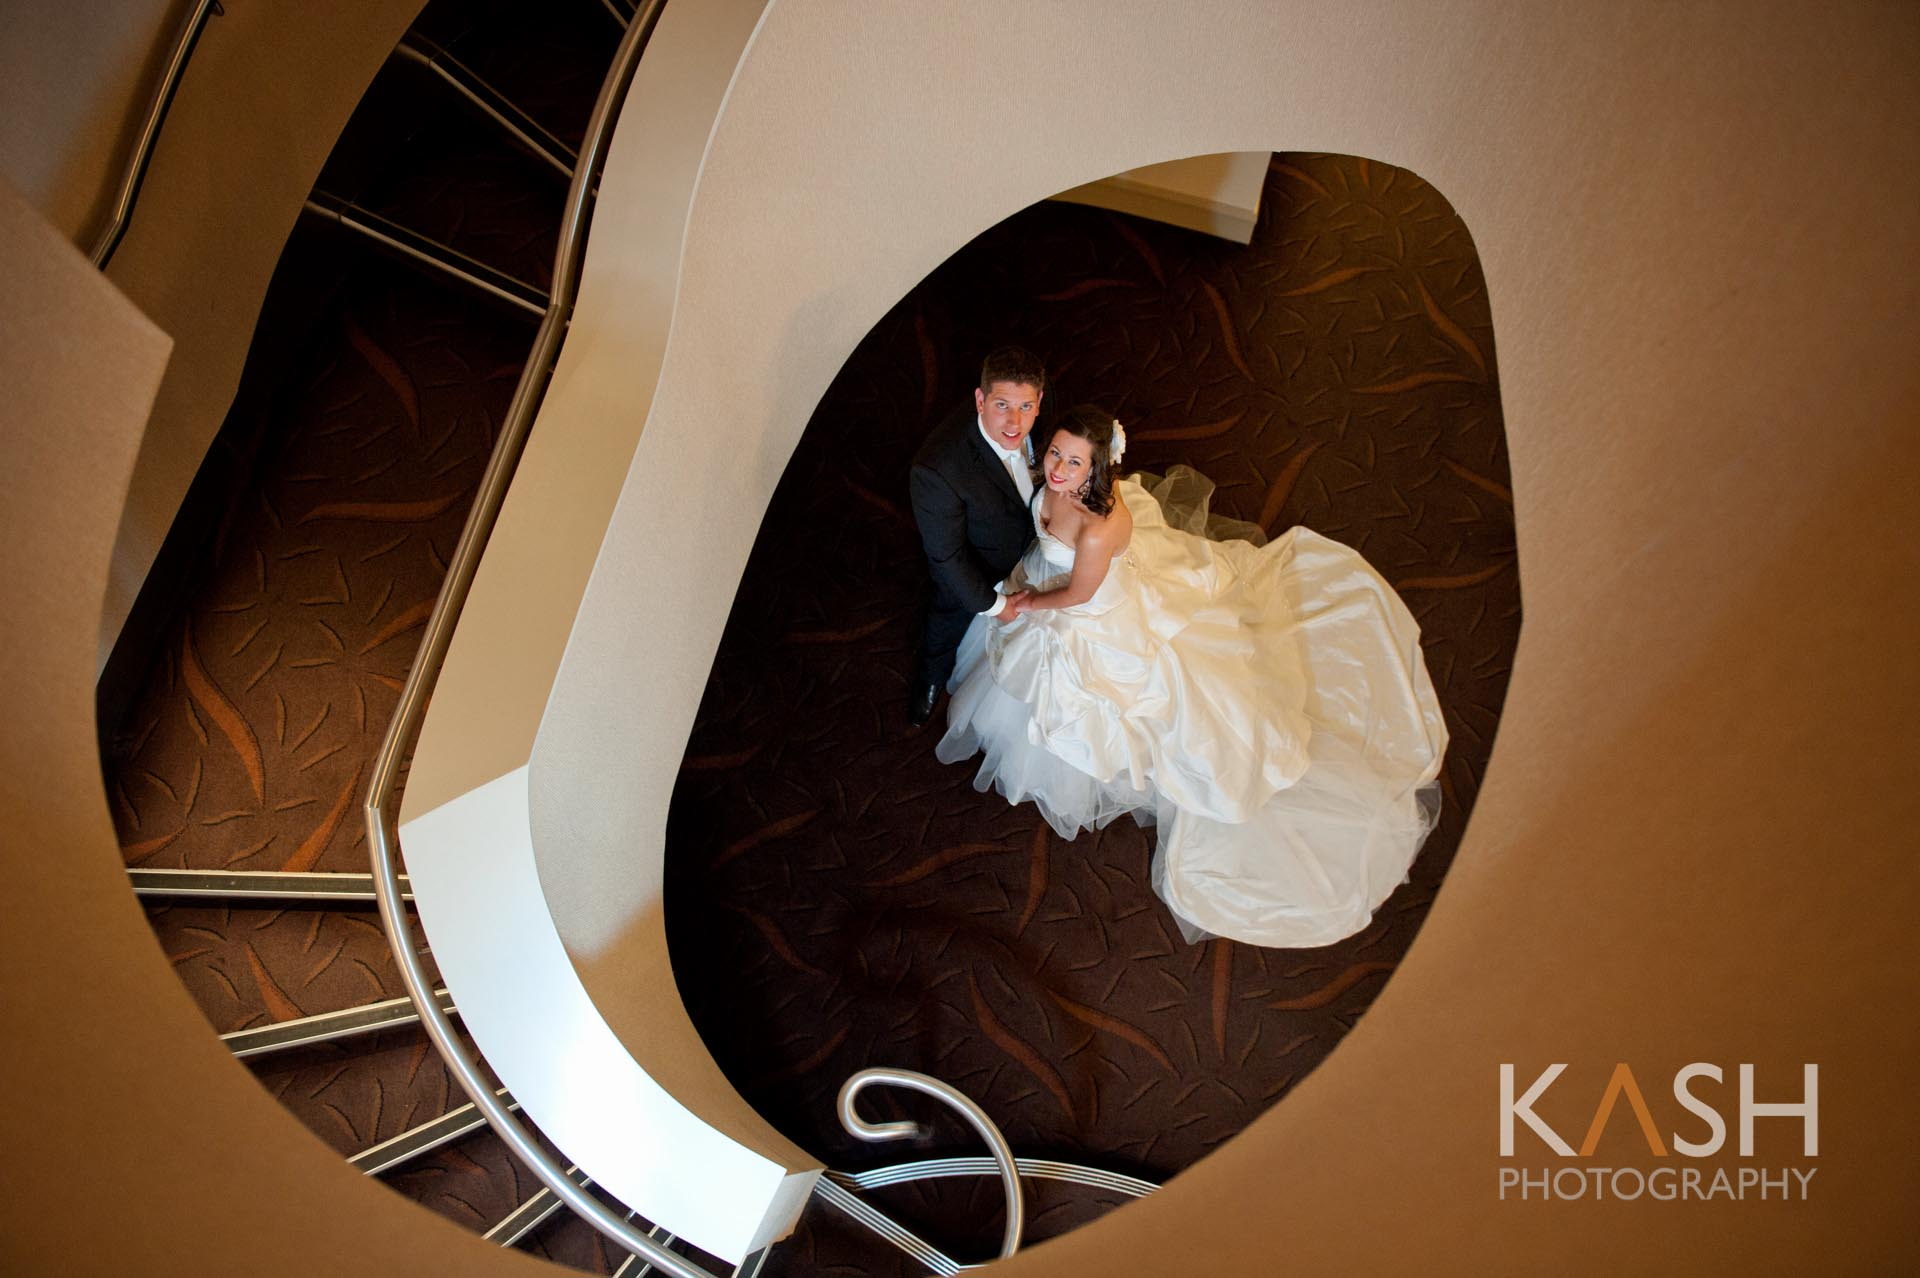 KASH PHOTOGRAPHY 6451